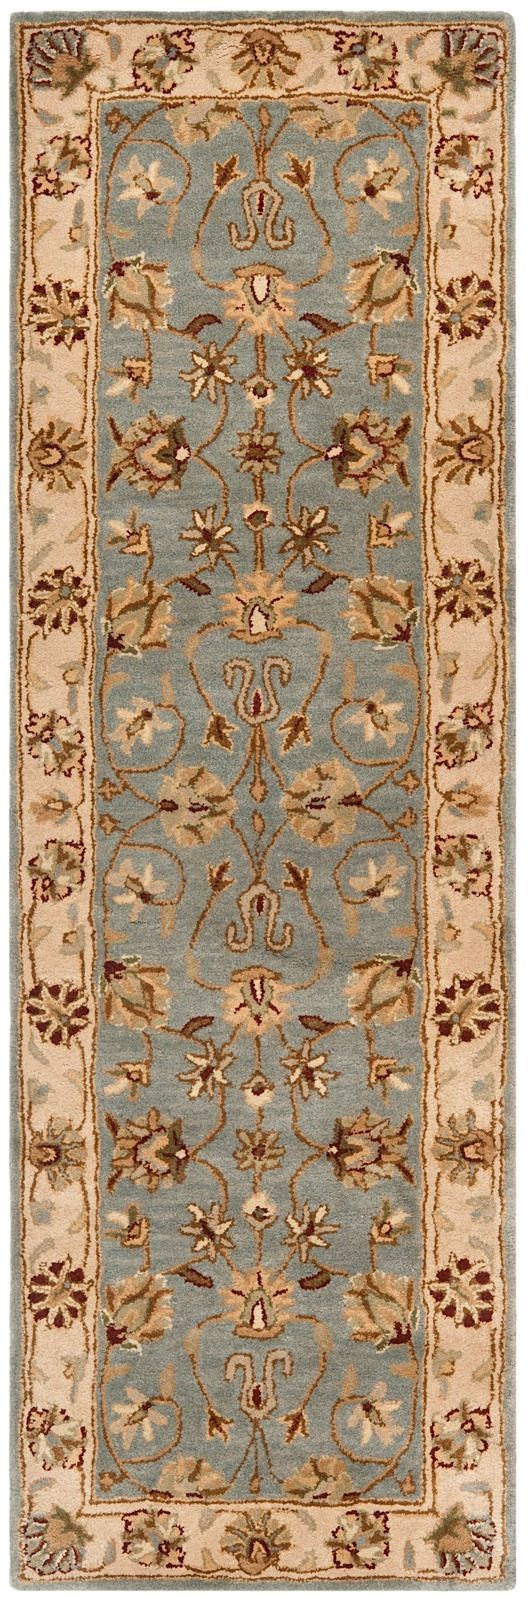 safavieh royalty traditional area rug collection